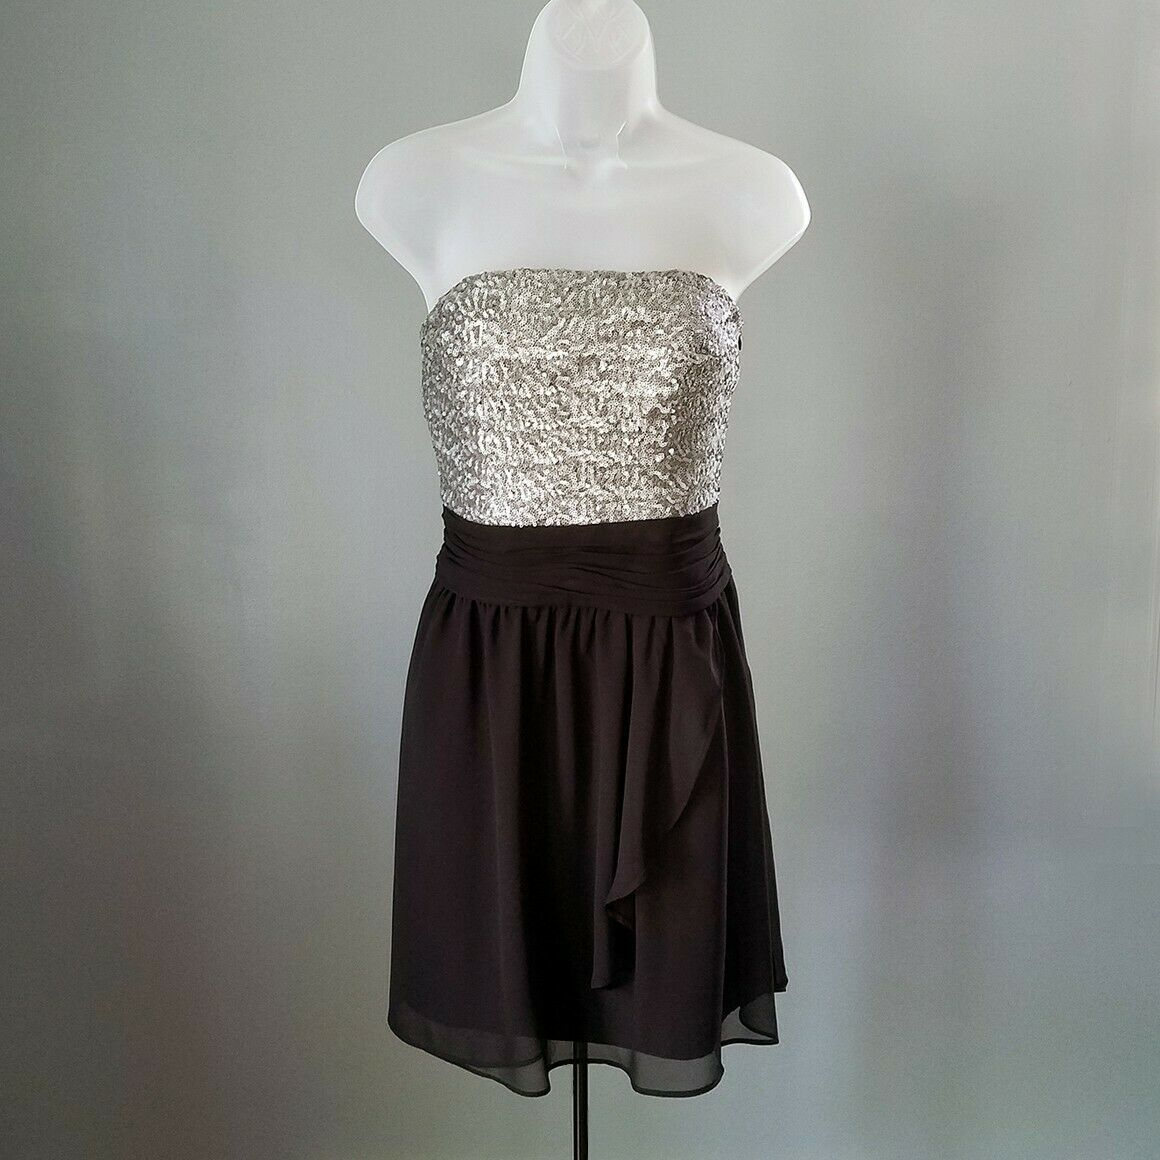 Express Silver & Black Sequin Strapless Cocktail Dress Size 6